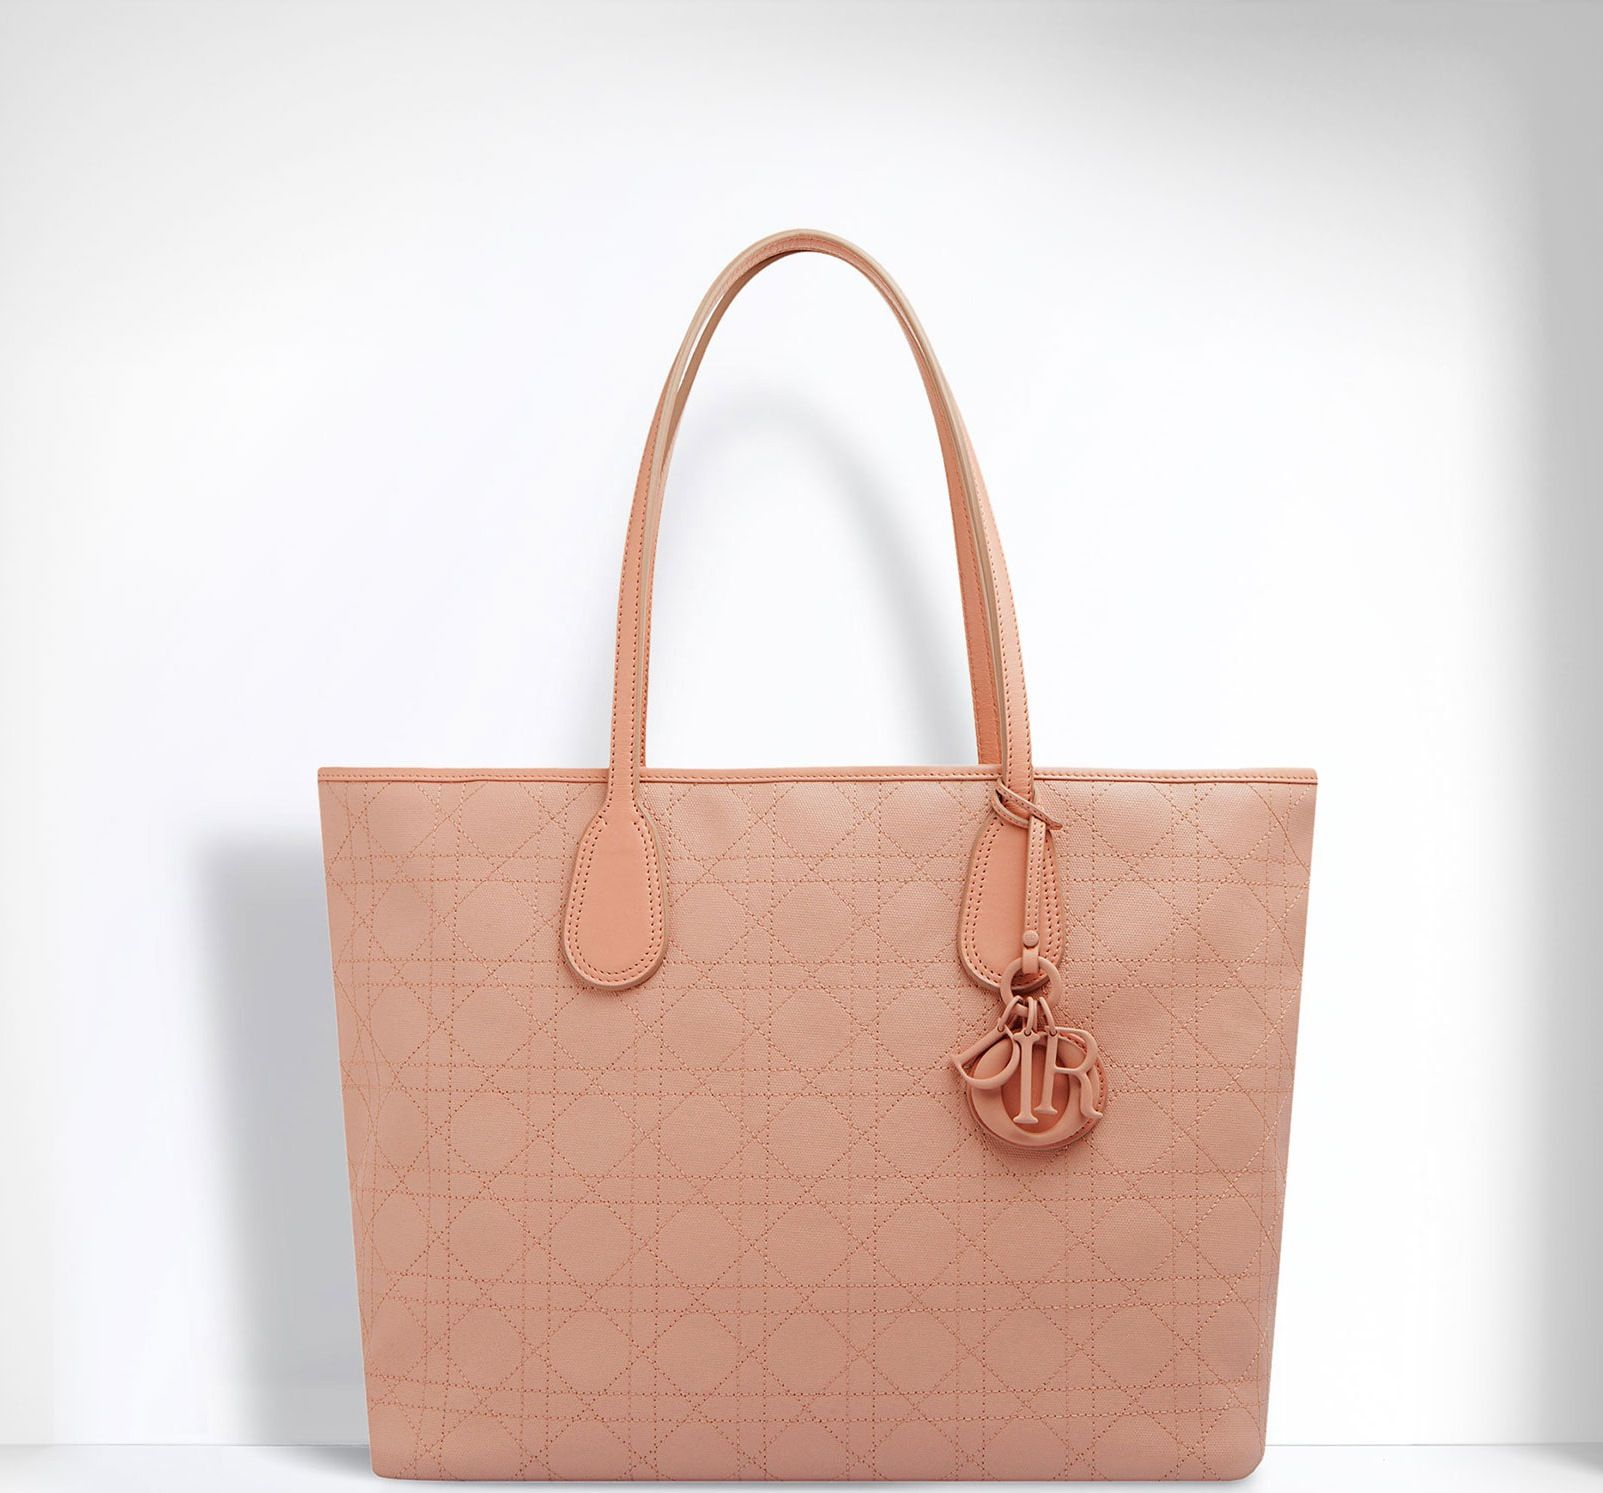 Introducing the New Dior Panarea Shopping Tote Bag for The new version of  Dior Panarea for Spring/Summer 2014 is made of 'Rosato' canvas, and feature